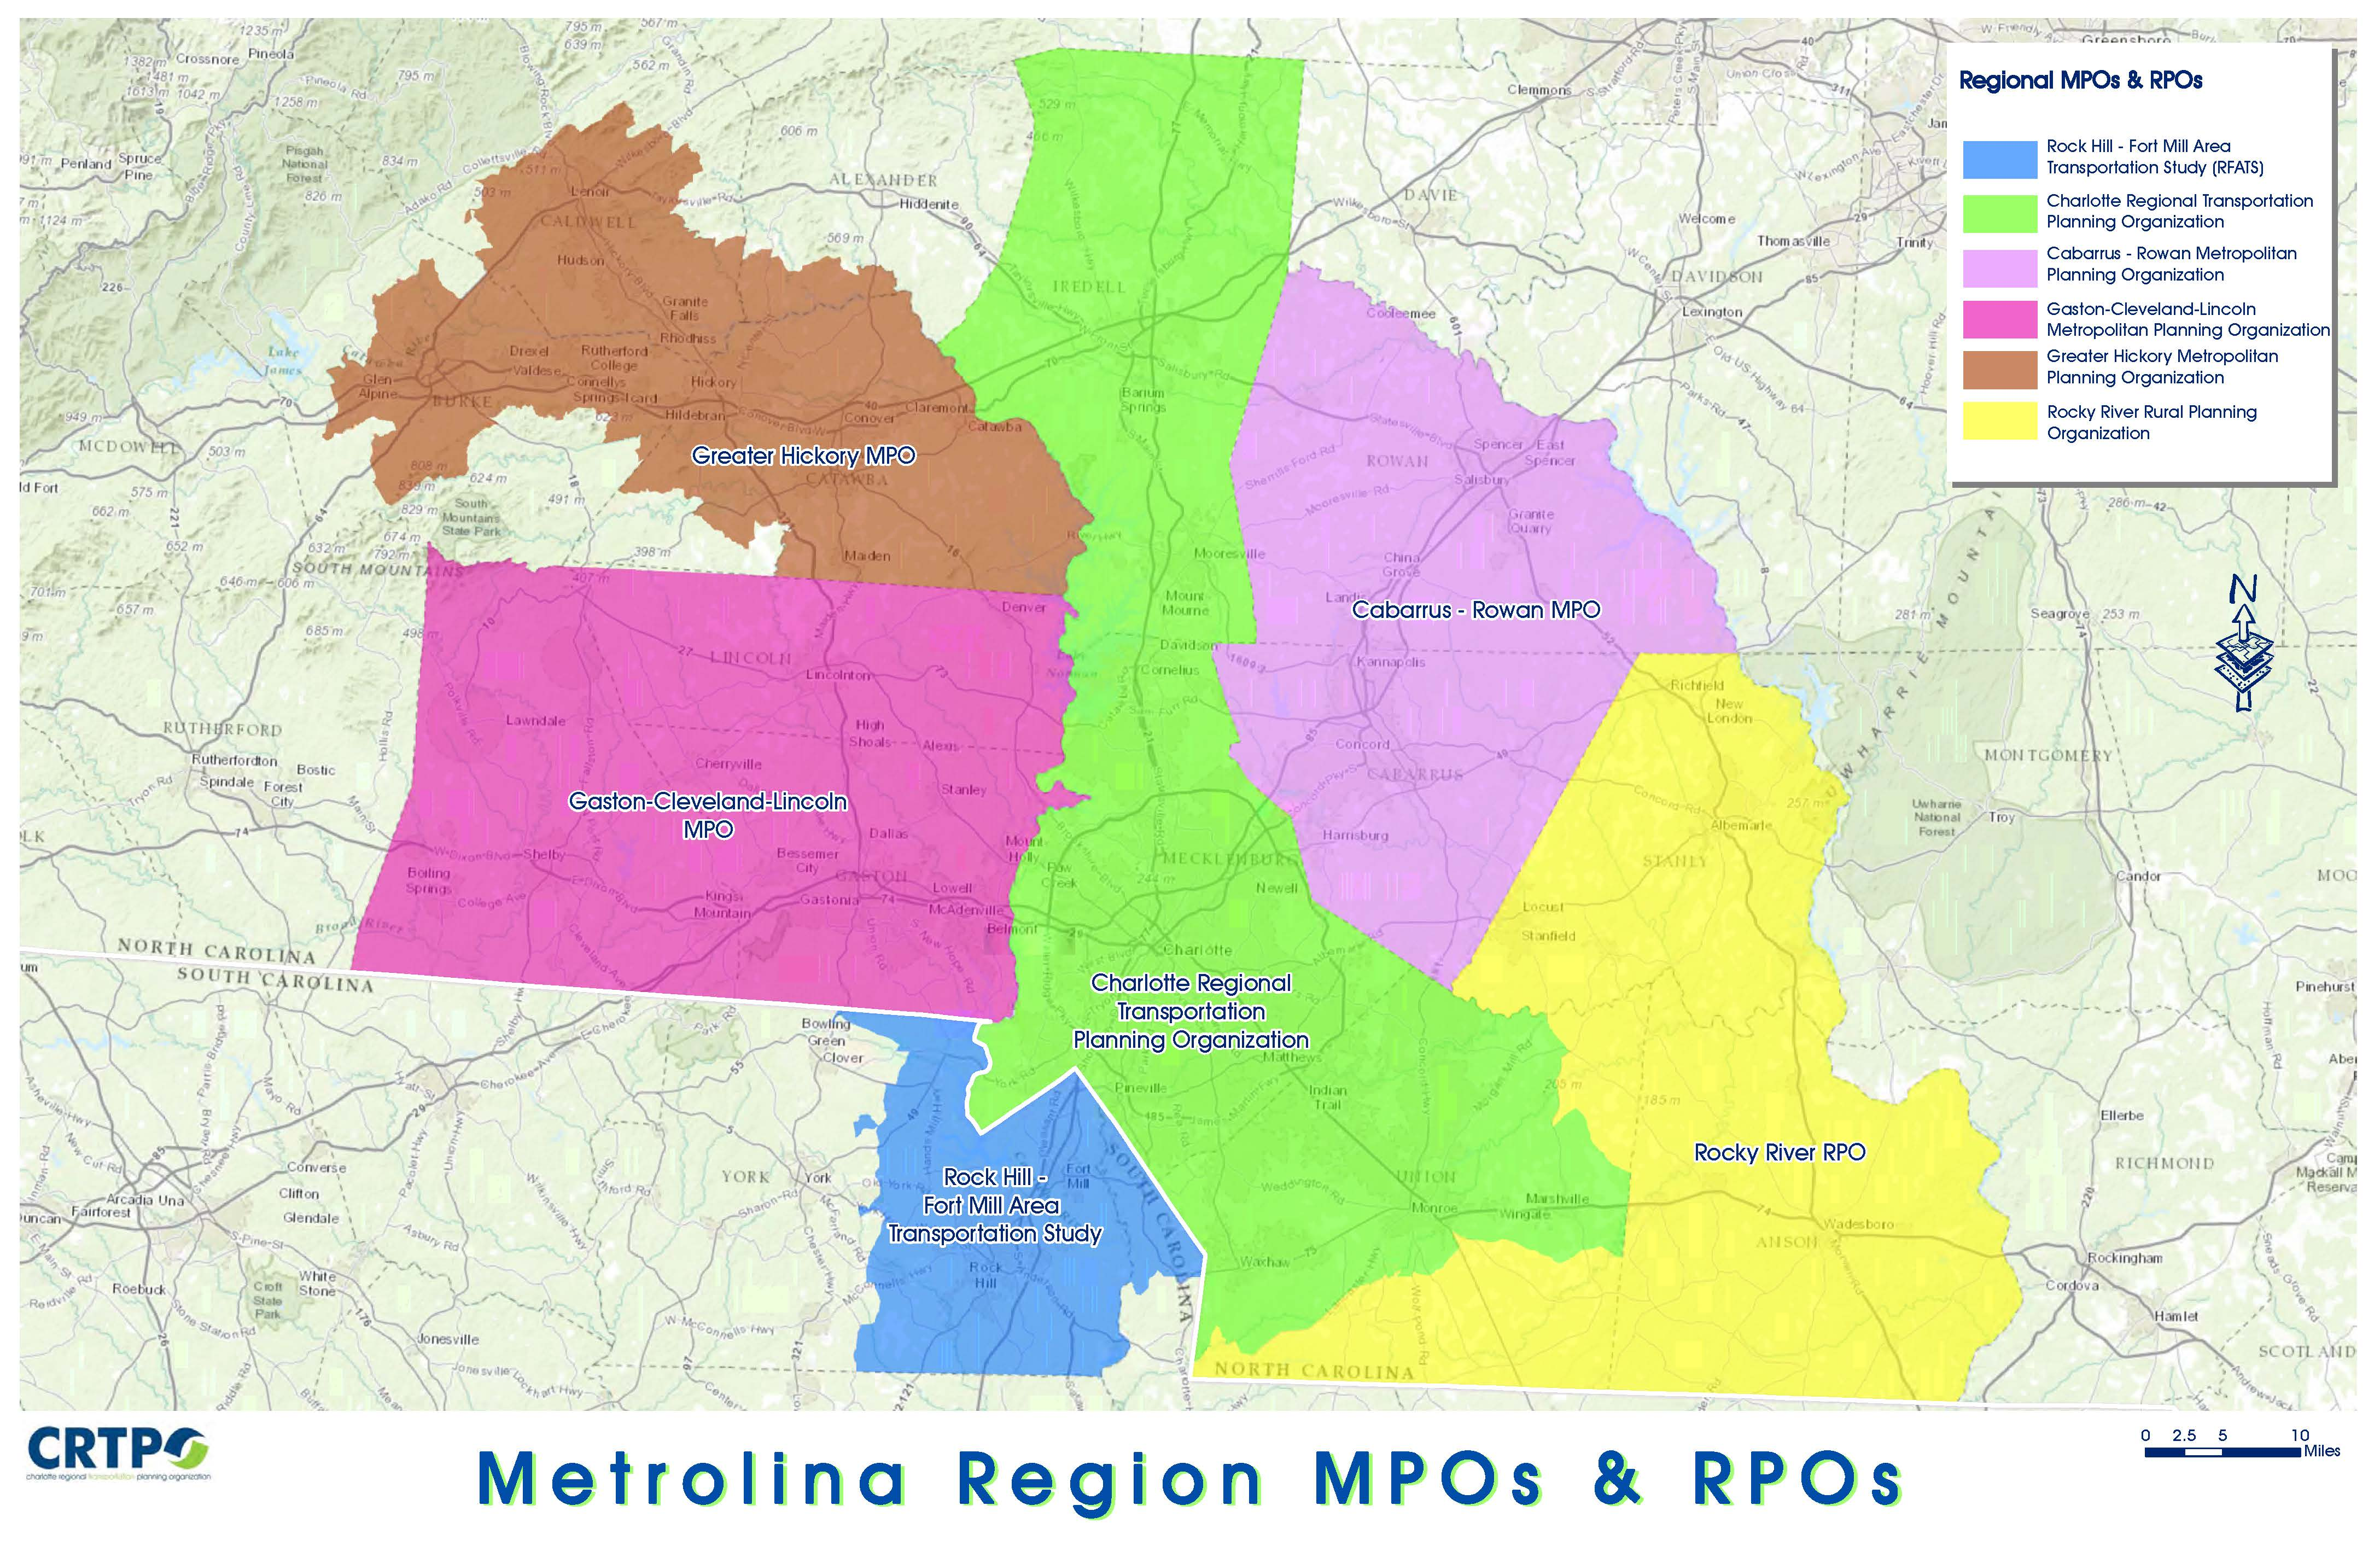 Greater Charlotte MPOs / RPOs